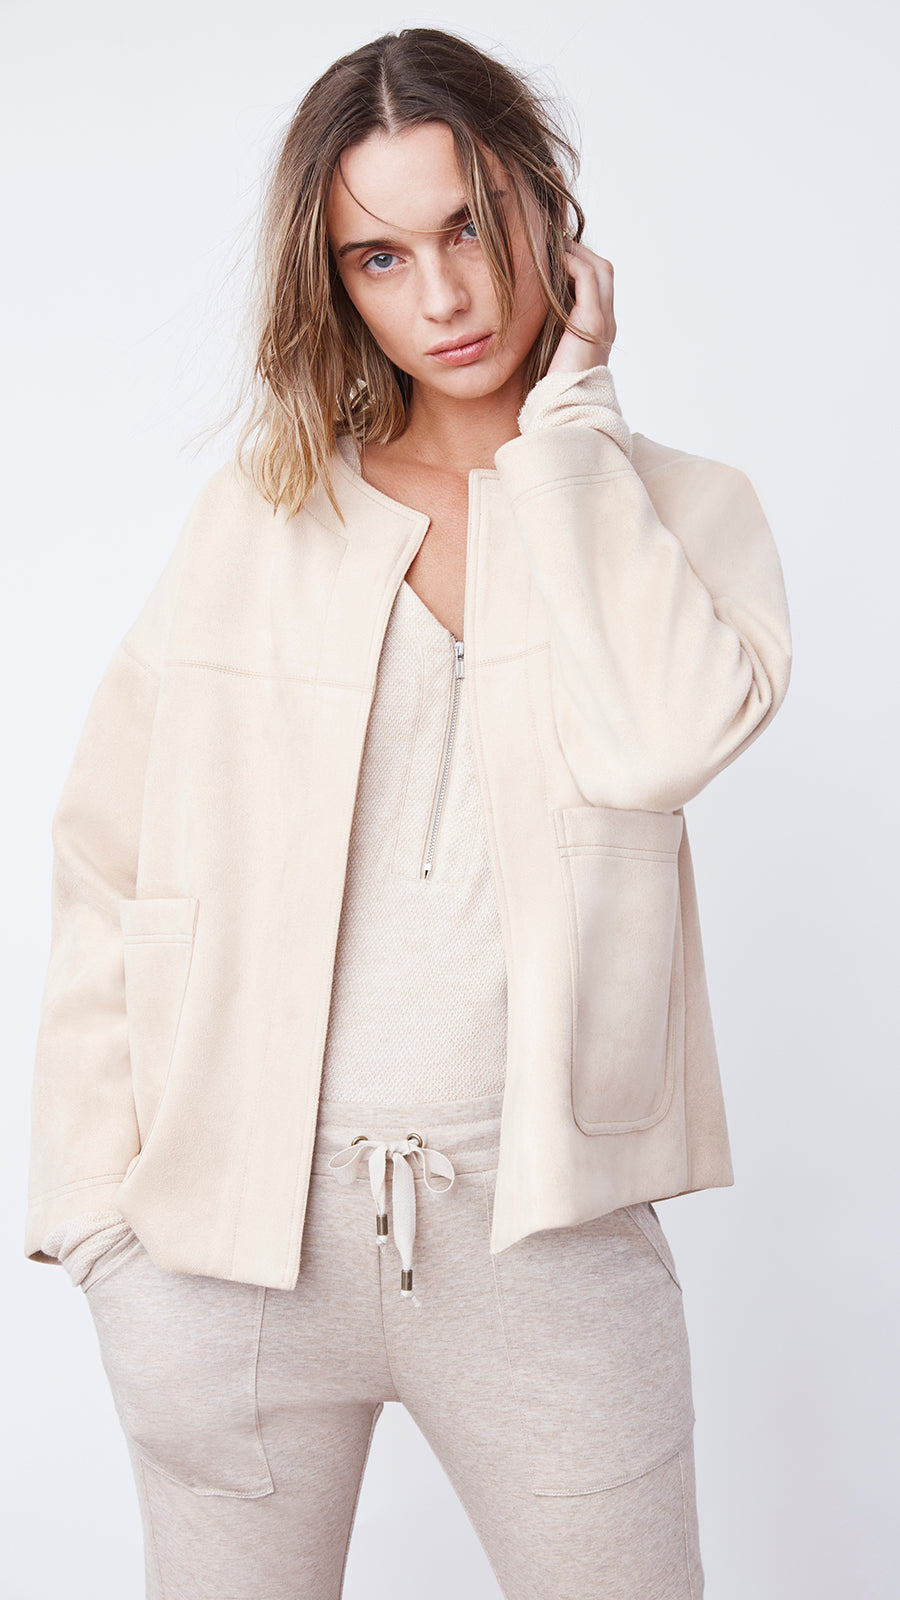 Sophisticated Beige Short Jacket by b new york